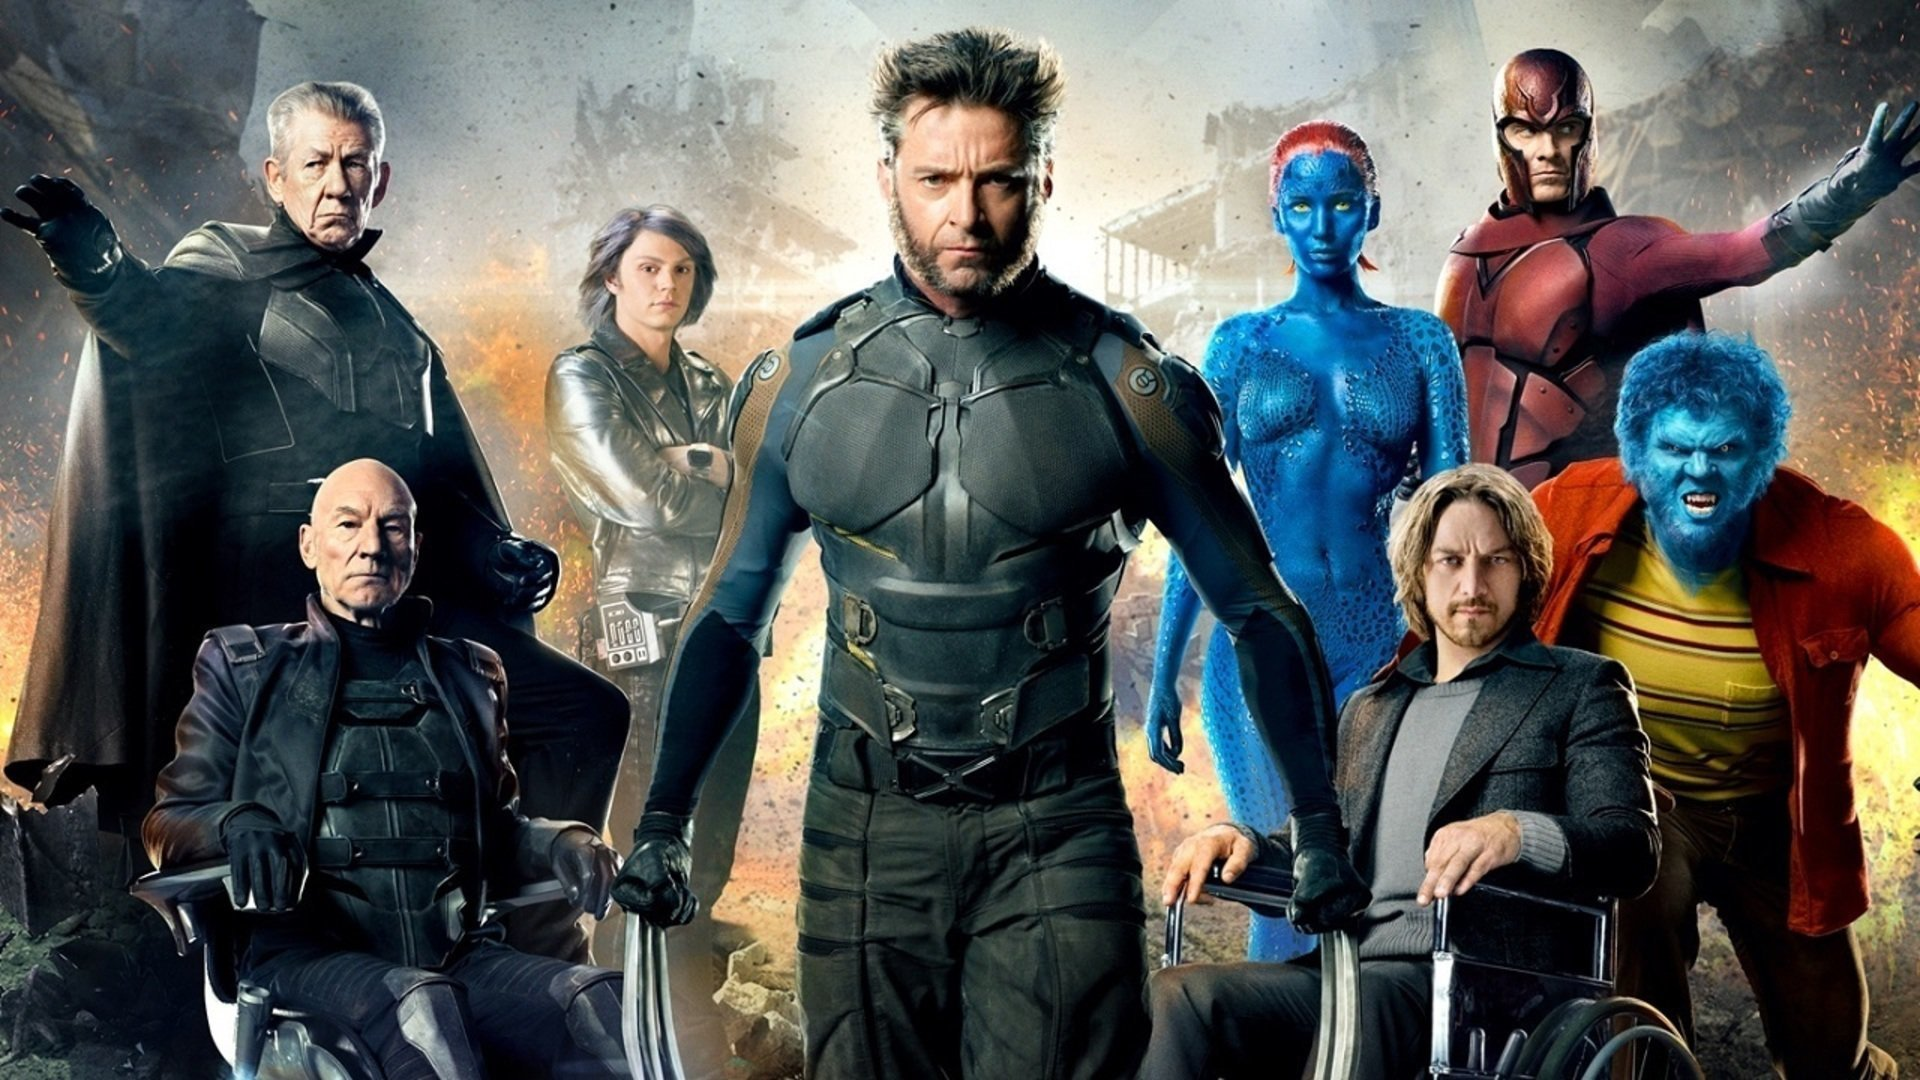 free download x-men: days of future past wallpaper id:8450 1080p for pc